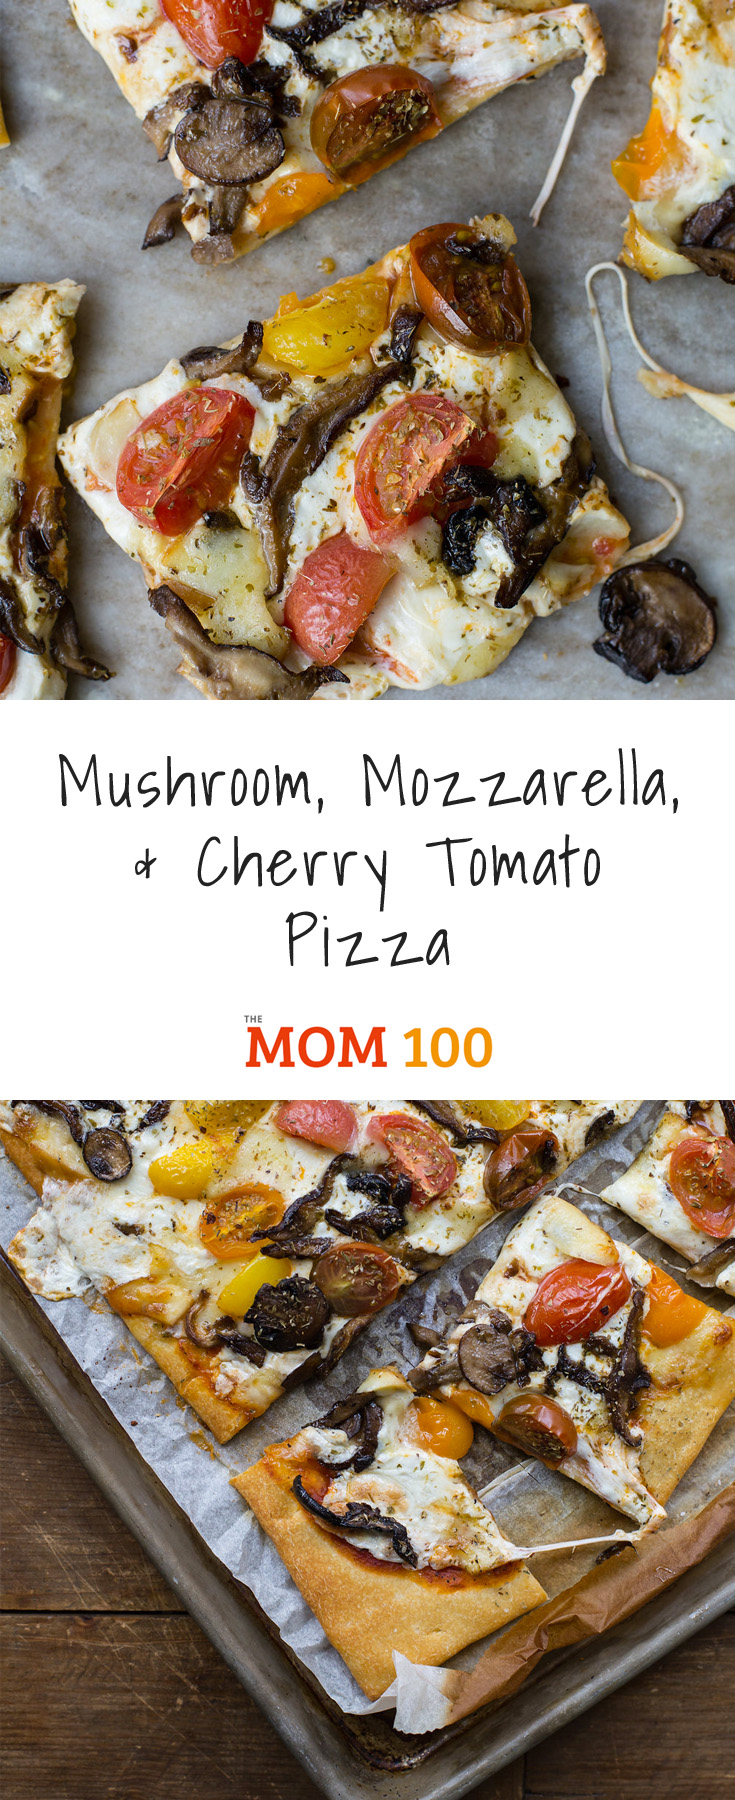 Mushroom, Mozzarella, and Cherry Tomato Pizza: In flavor and in looks, this vegetarian keeps you on your toes, in a really good way.